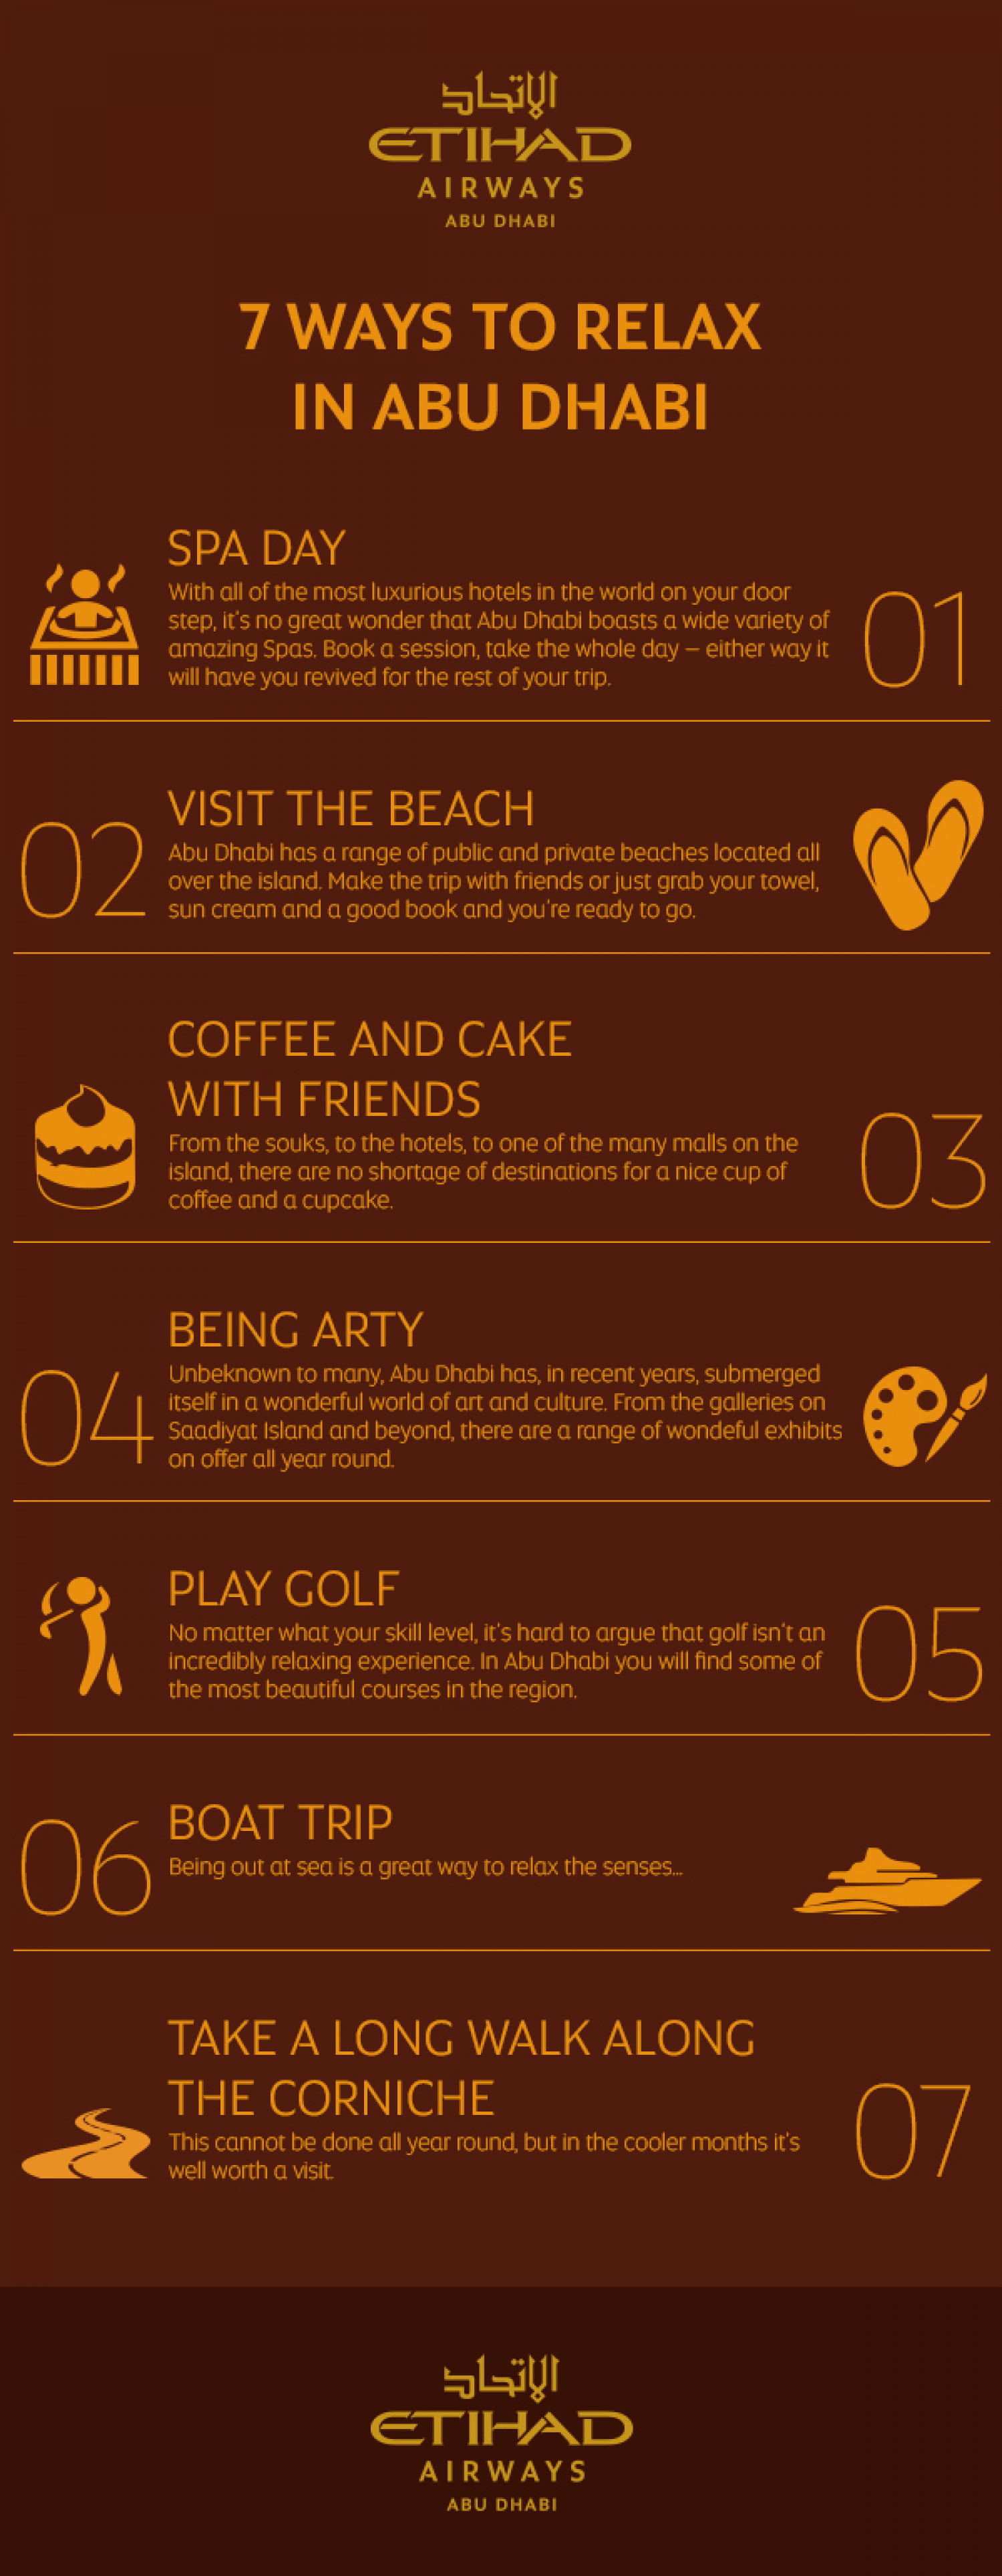 Etihad'sTop 7 Ways to Relax in Abu Dhabi Infographic